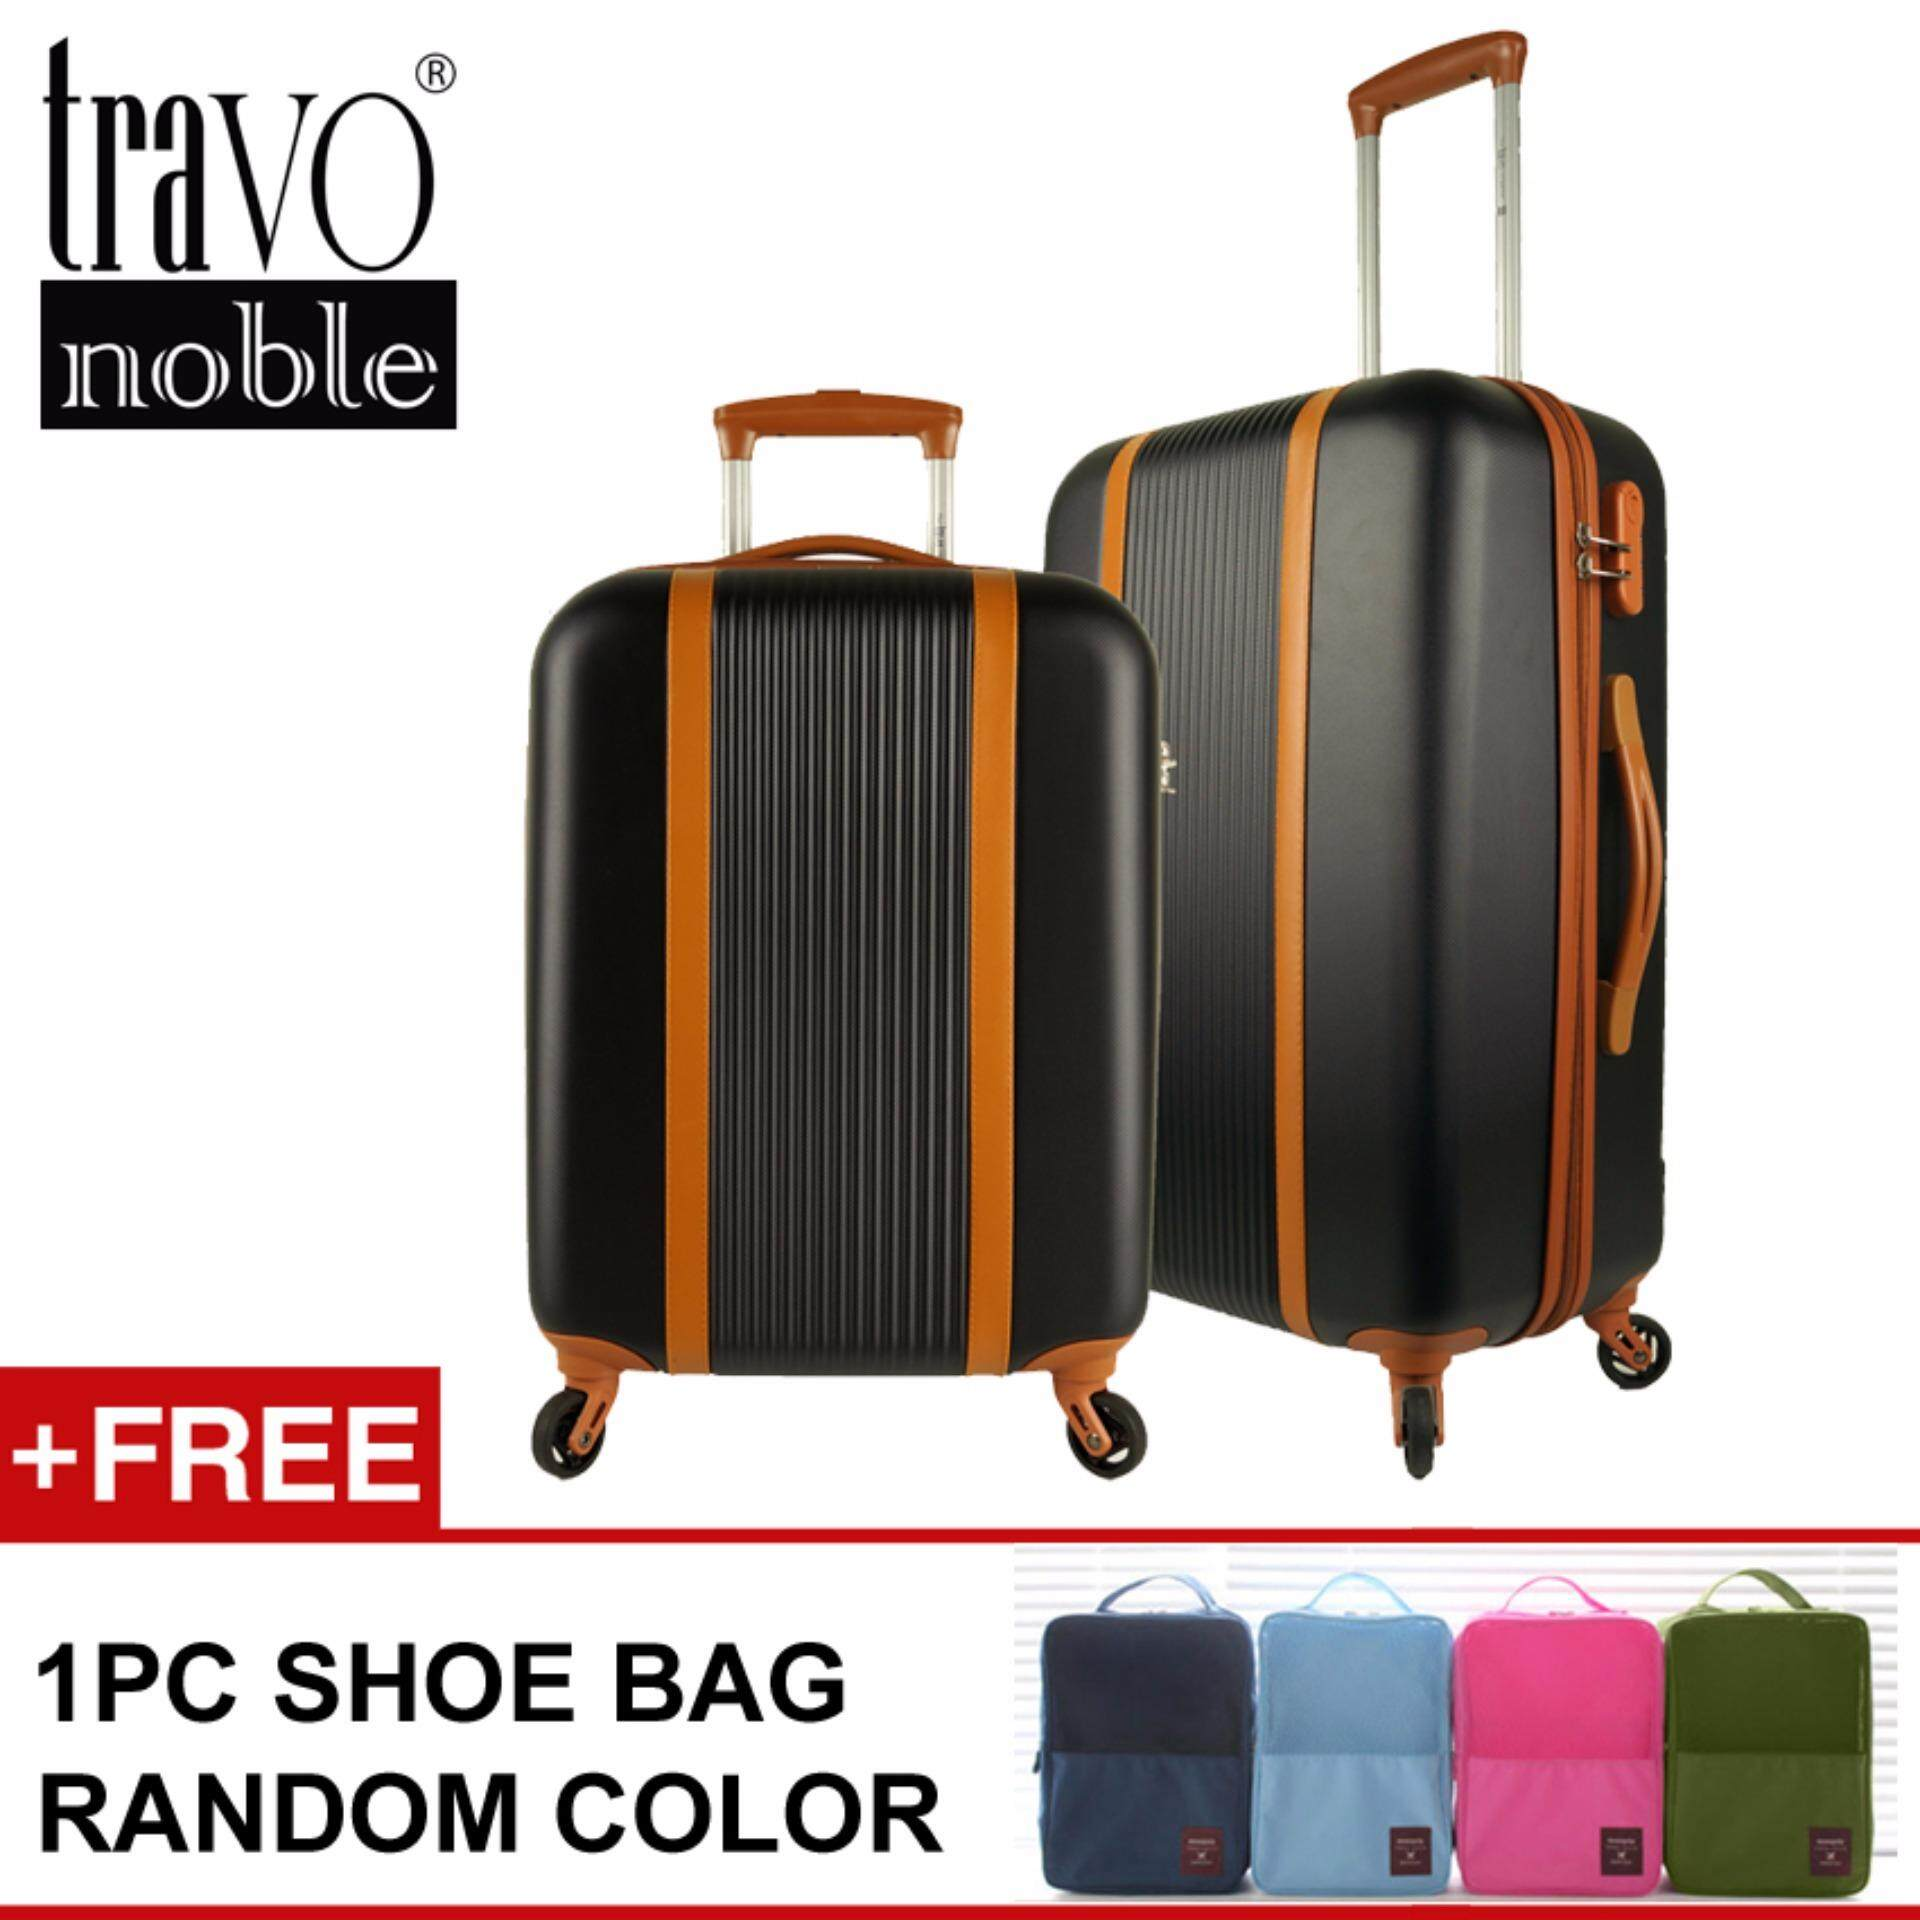 6df8fc046 Comparison of Travo and Valentino Creations Luggage Sets reviews ...